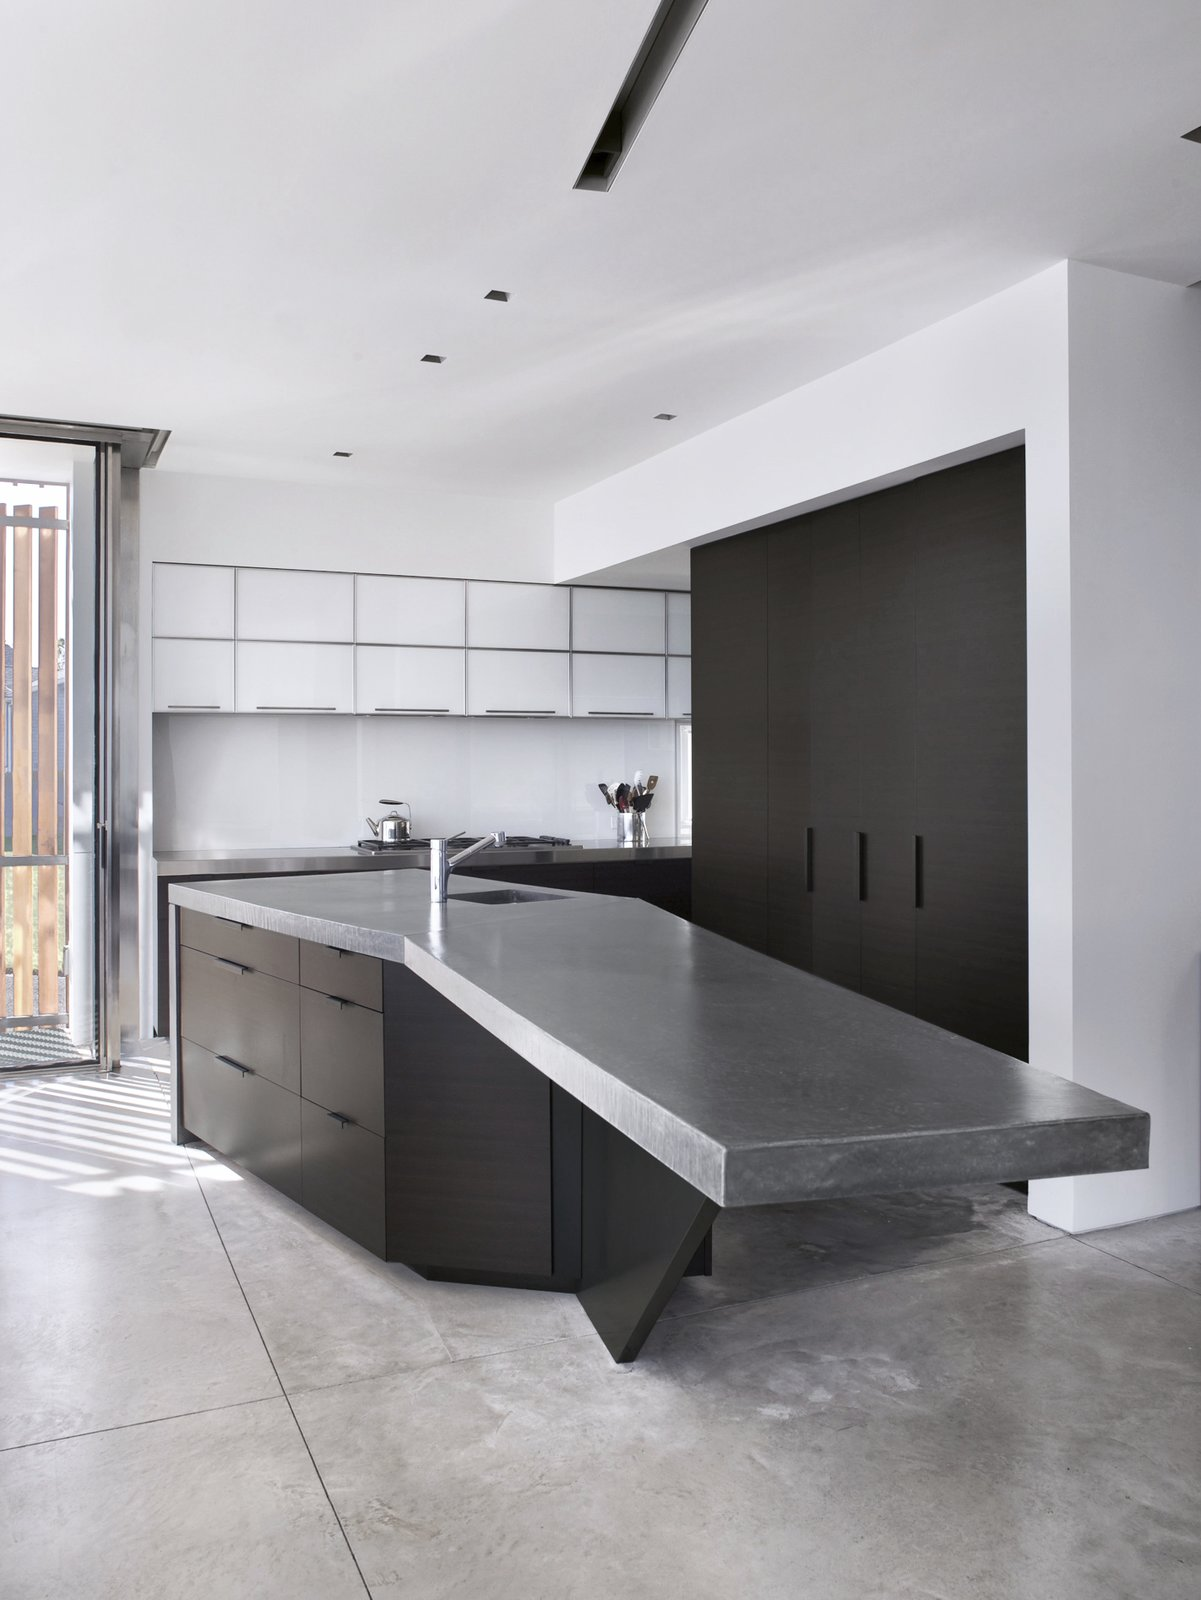 Kitchen, Range, Refrigerator, White Cabinet, Ceiling Lighting, and Undermount Sink  Spiral House by Joeb Moore & Partners